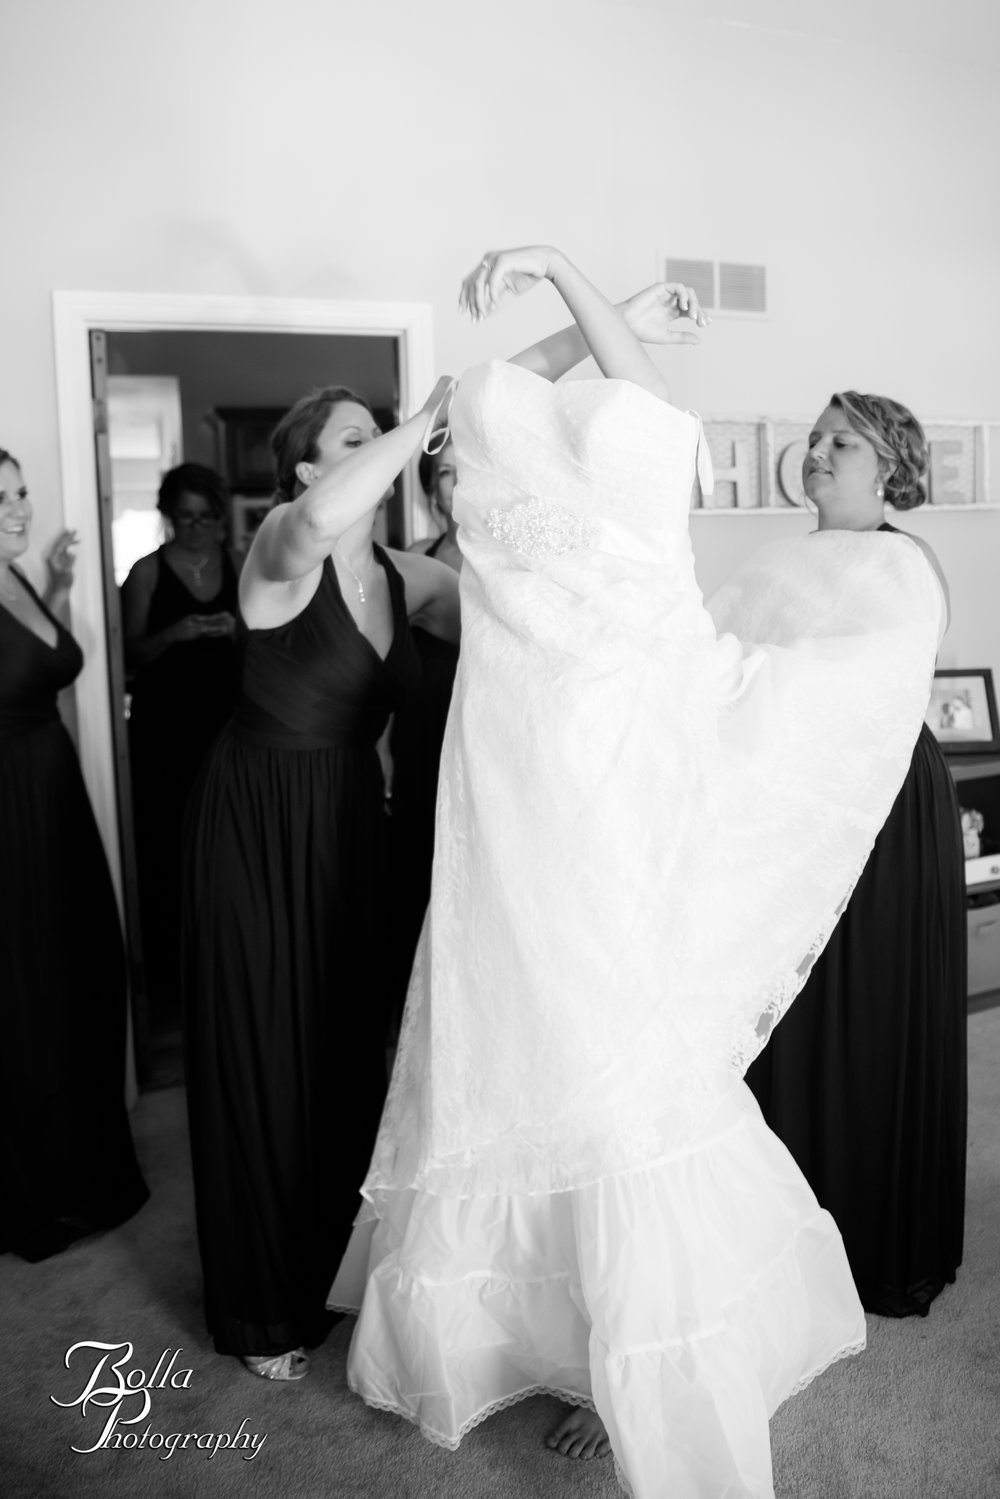 Bolla_photography_edwardsville_wedding_photographer_st_louis_weddings_Jessica_Barbachem_Dillon_Kaesberg_Waterloo_Red_Bud-0050.jpg